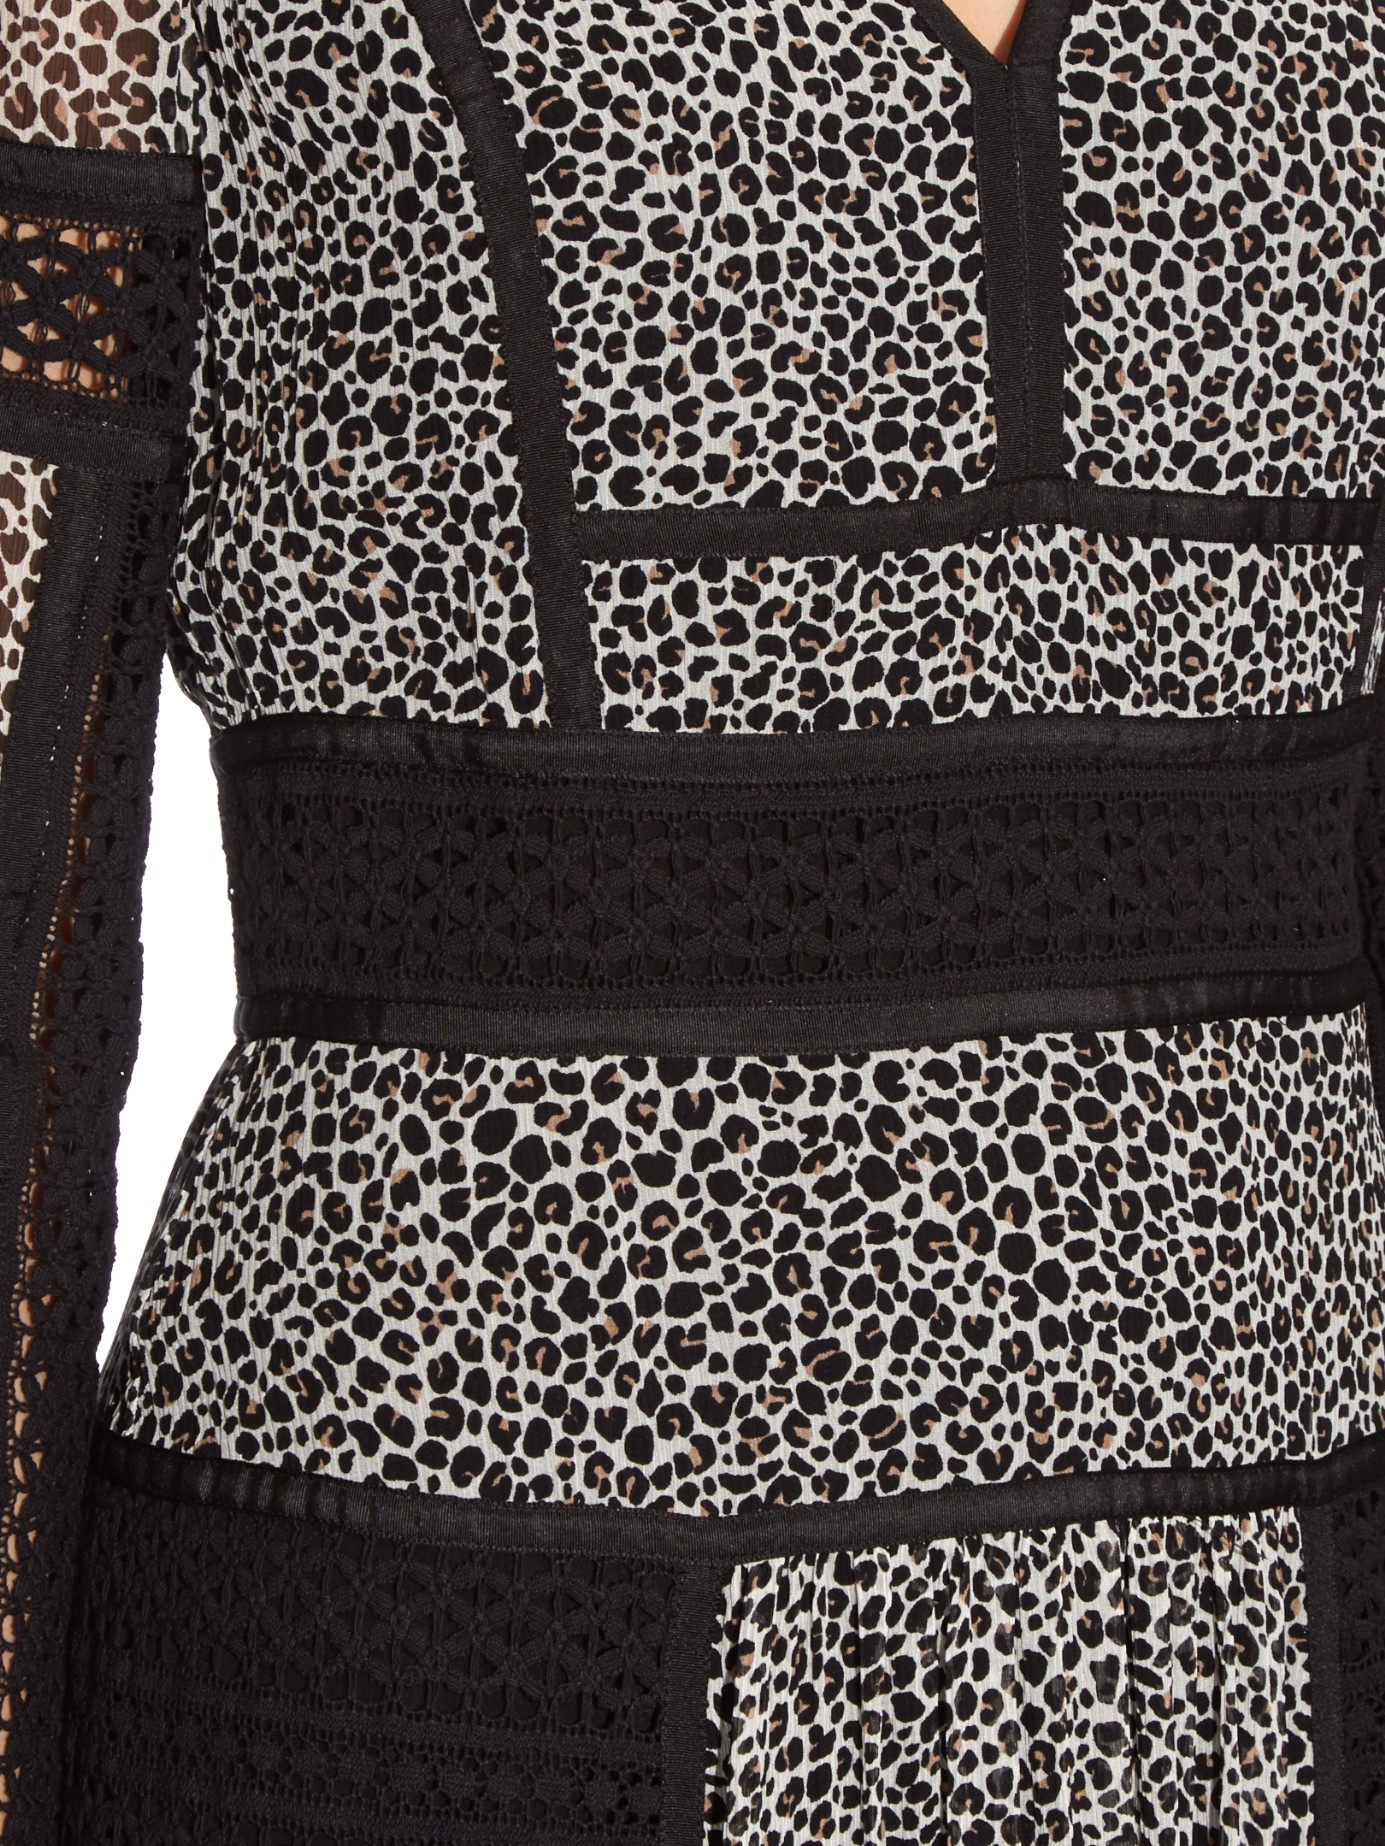 b21b2c950d303 Lyst - Burberry Lace And Leopard-print Panelled Silk Dress in Black